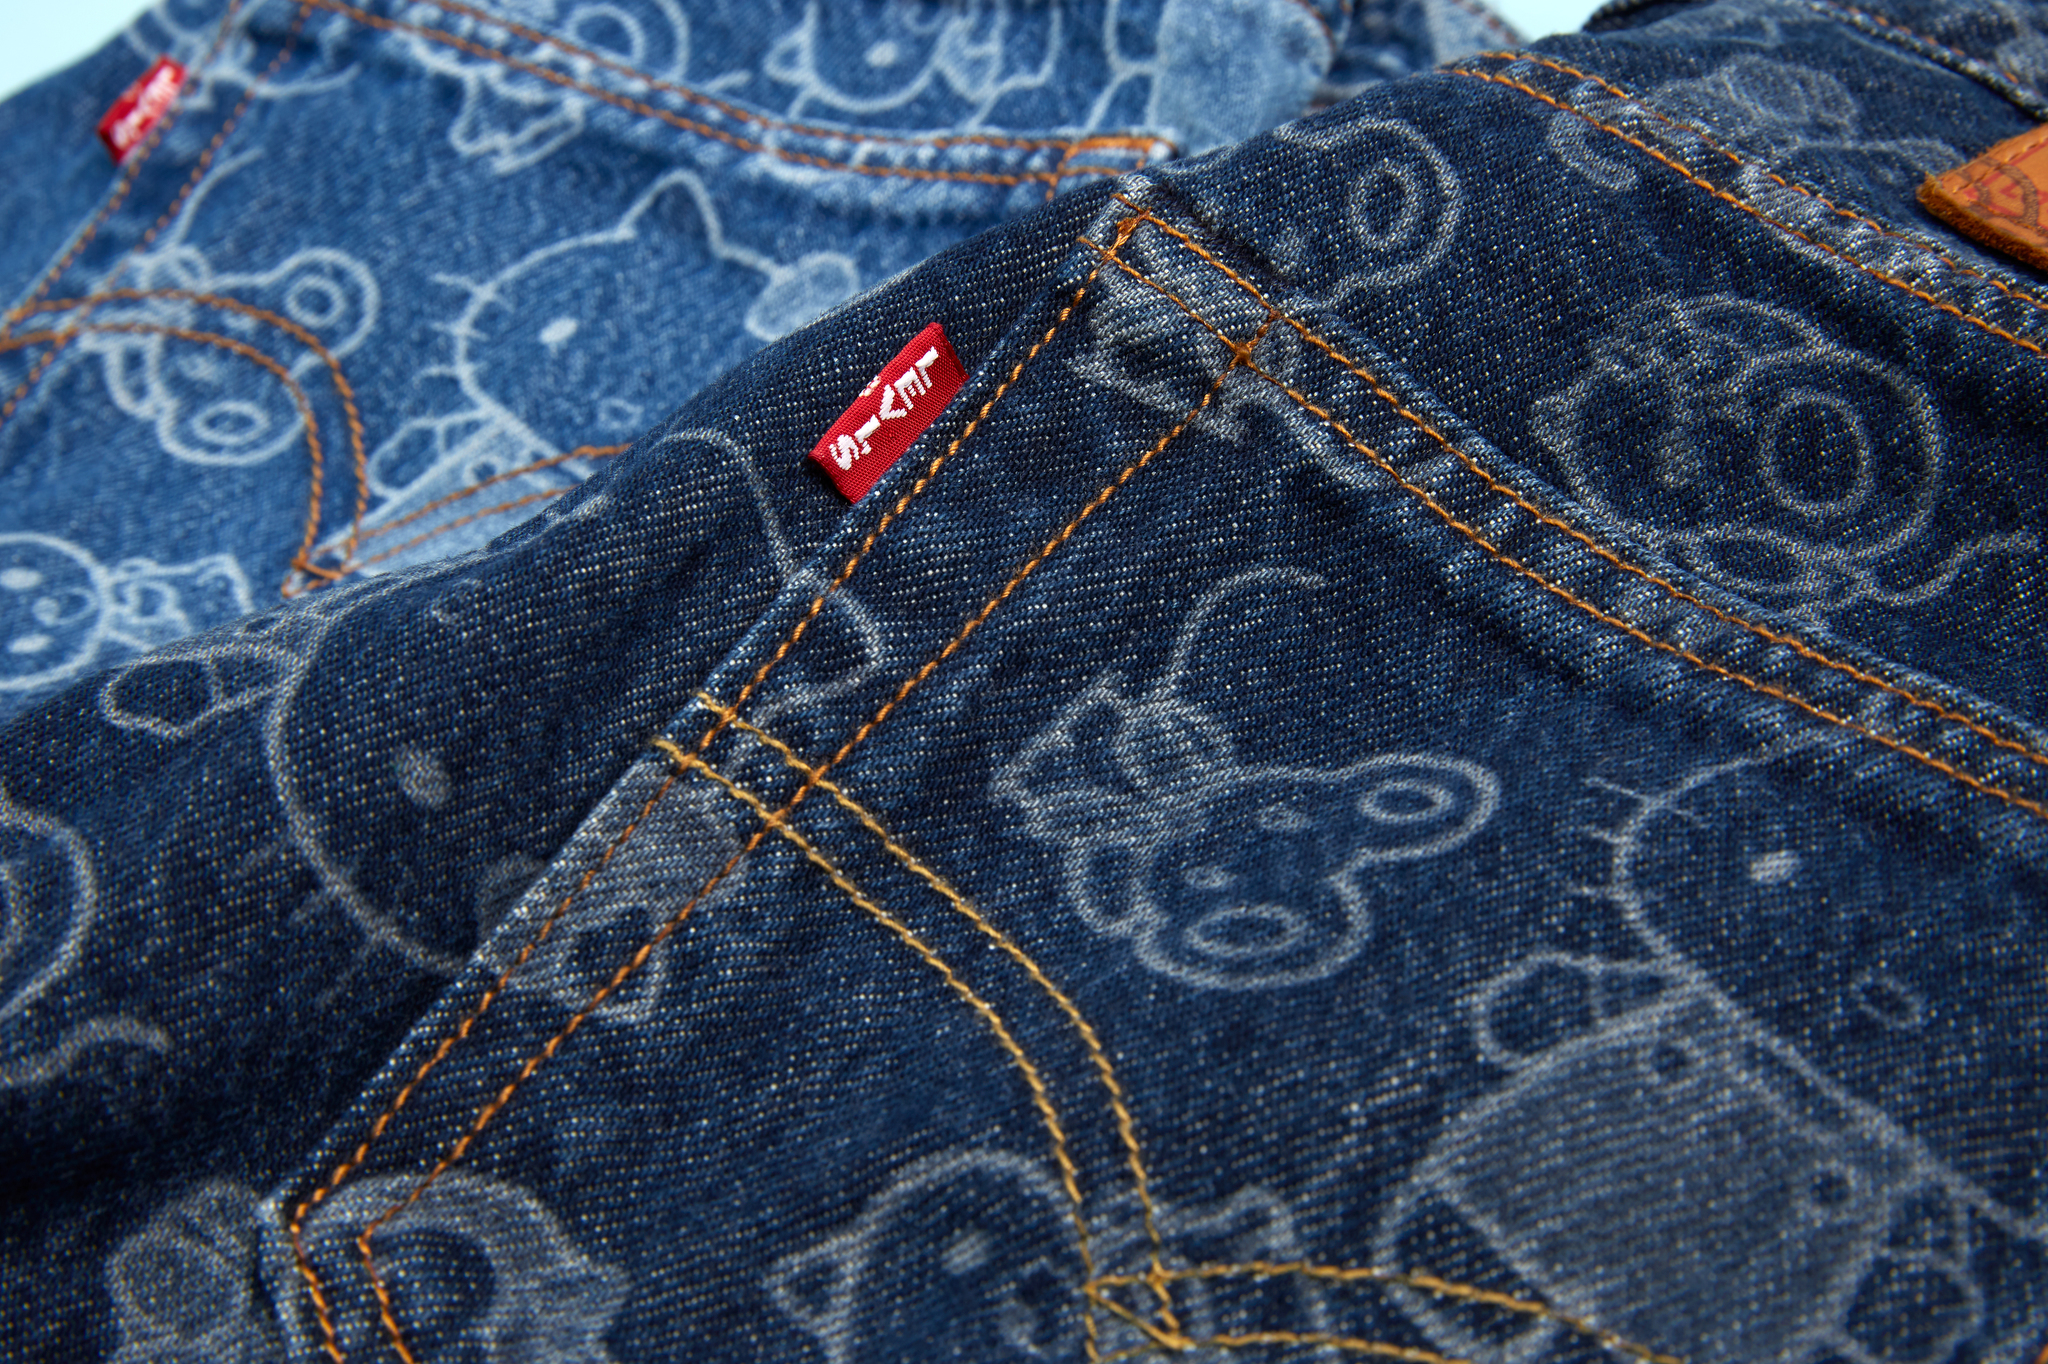 Levi's Hello Kitty-inspired jeans.